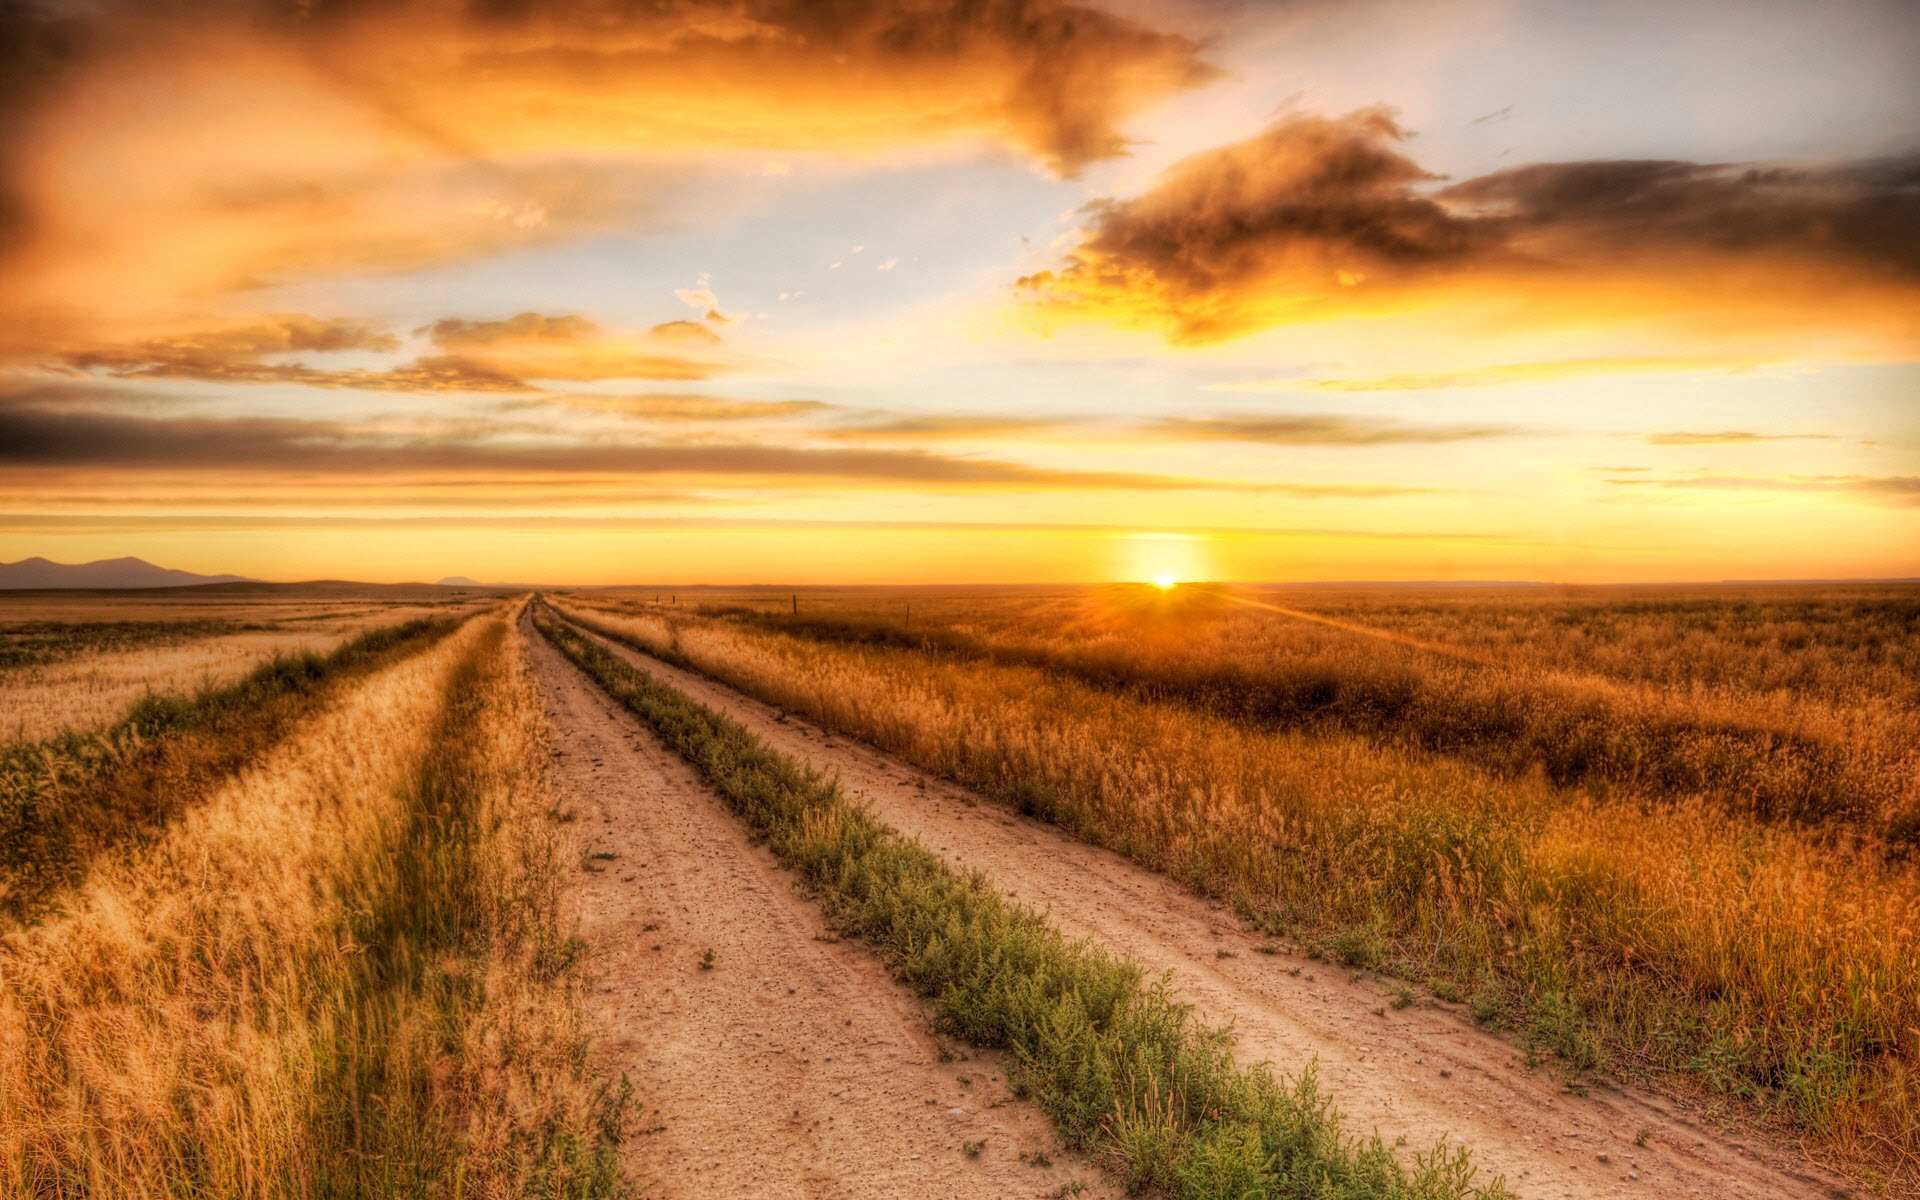 Country road 1920 x 1200 Sunriseandsunset Photography MIRIADNA 1920x1200